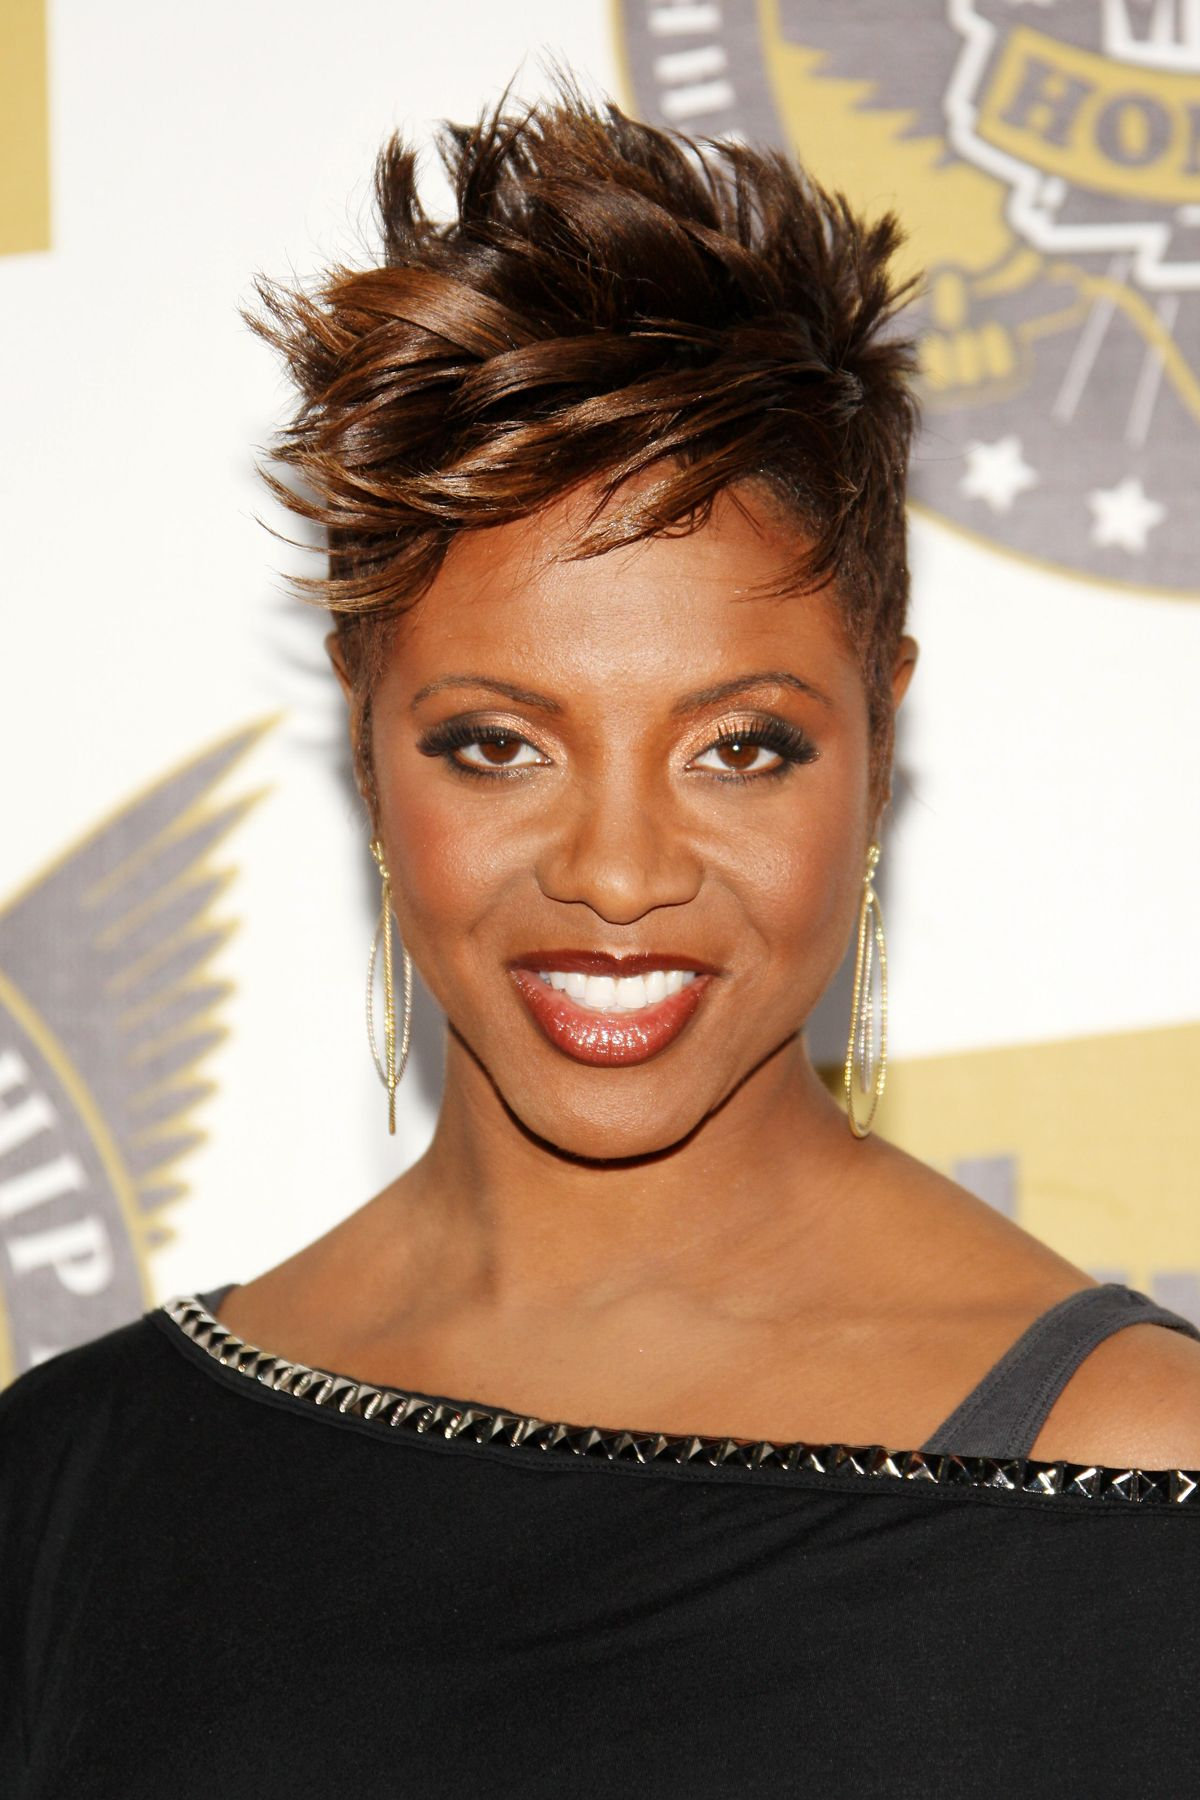 mc lyte to release 'legend' album after 12-year hiatus